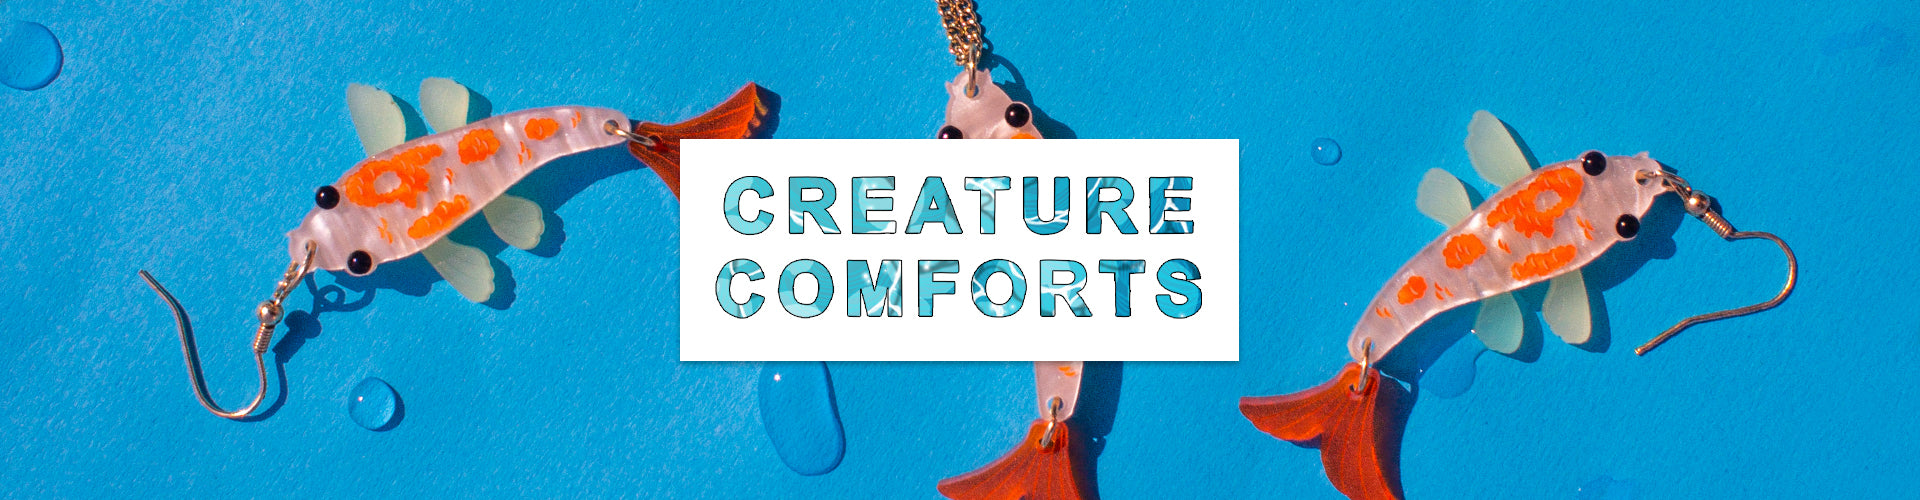 Creature Comforts to enjoy at home